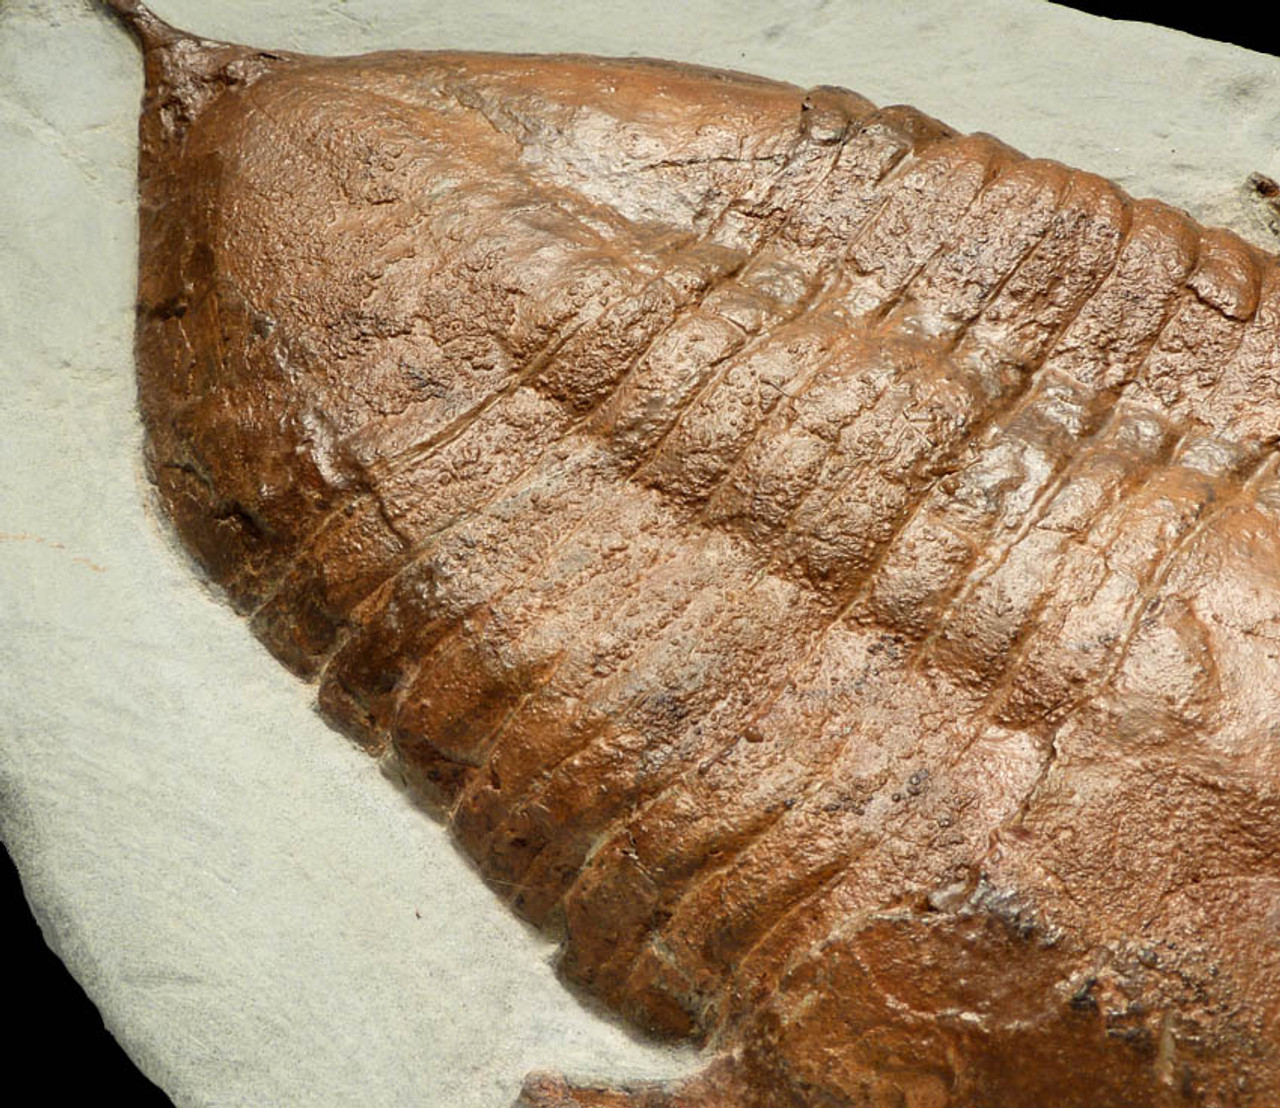 TRX032 - HUGE SPINY TAIL ASAPHID ORDOVICIAN TRILOBITE FOSSIL